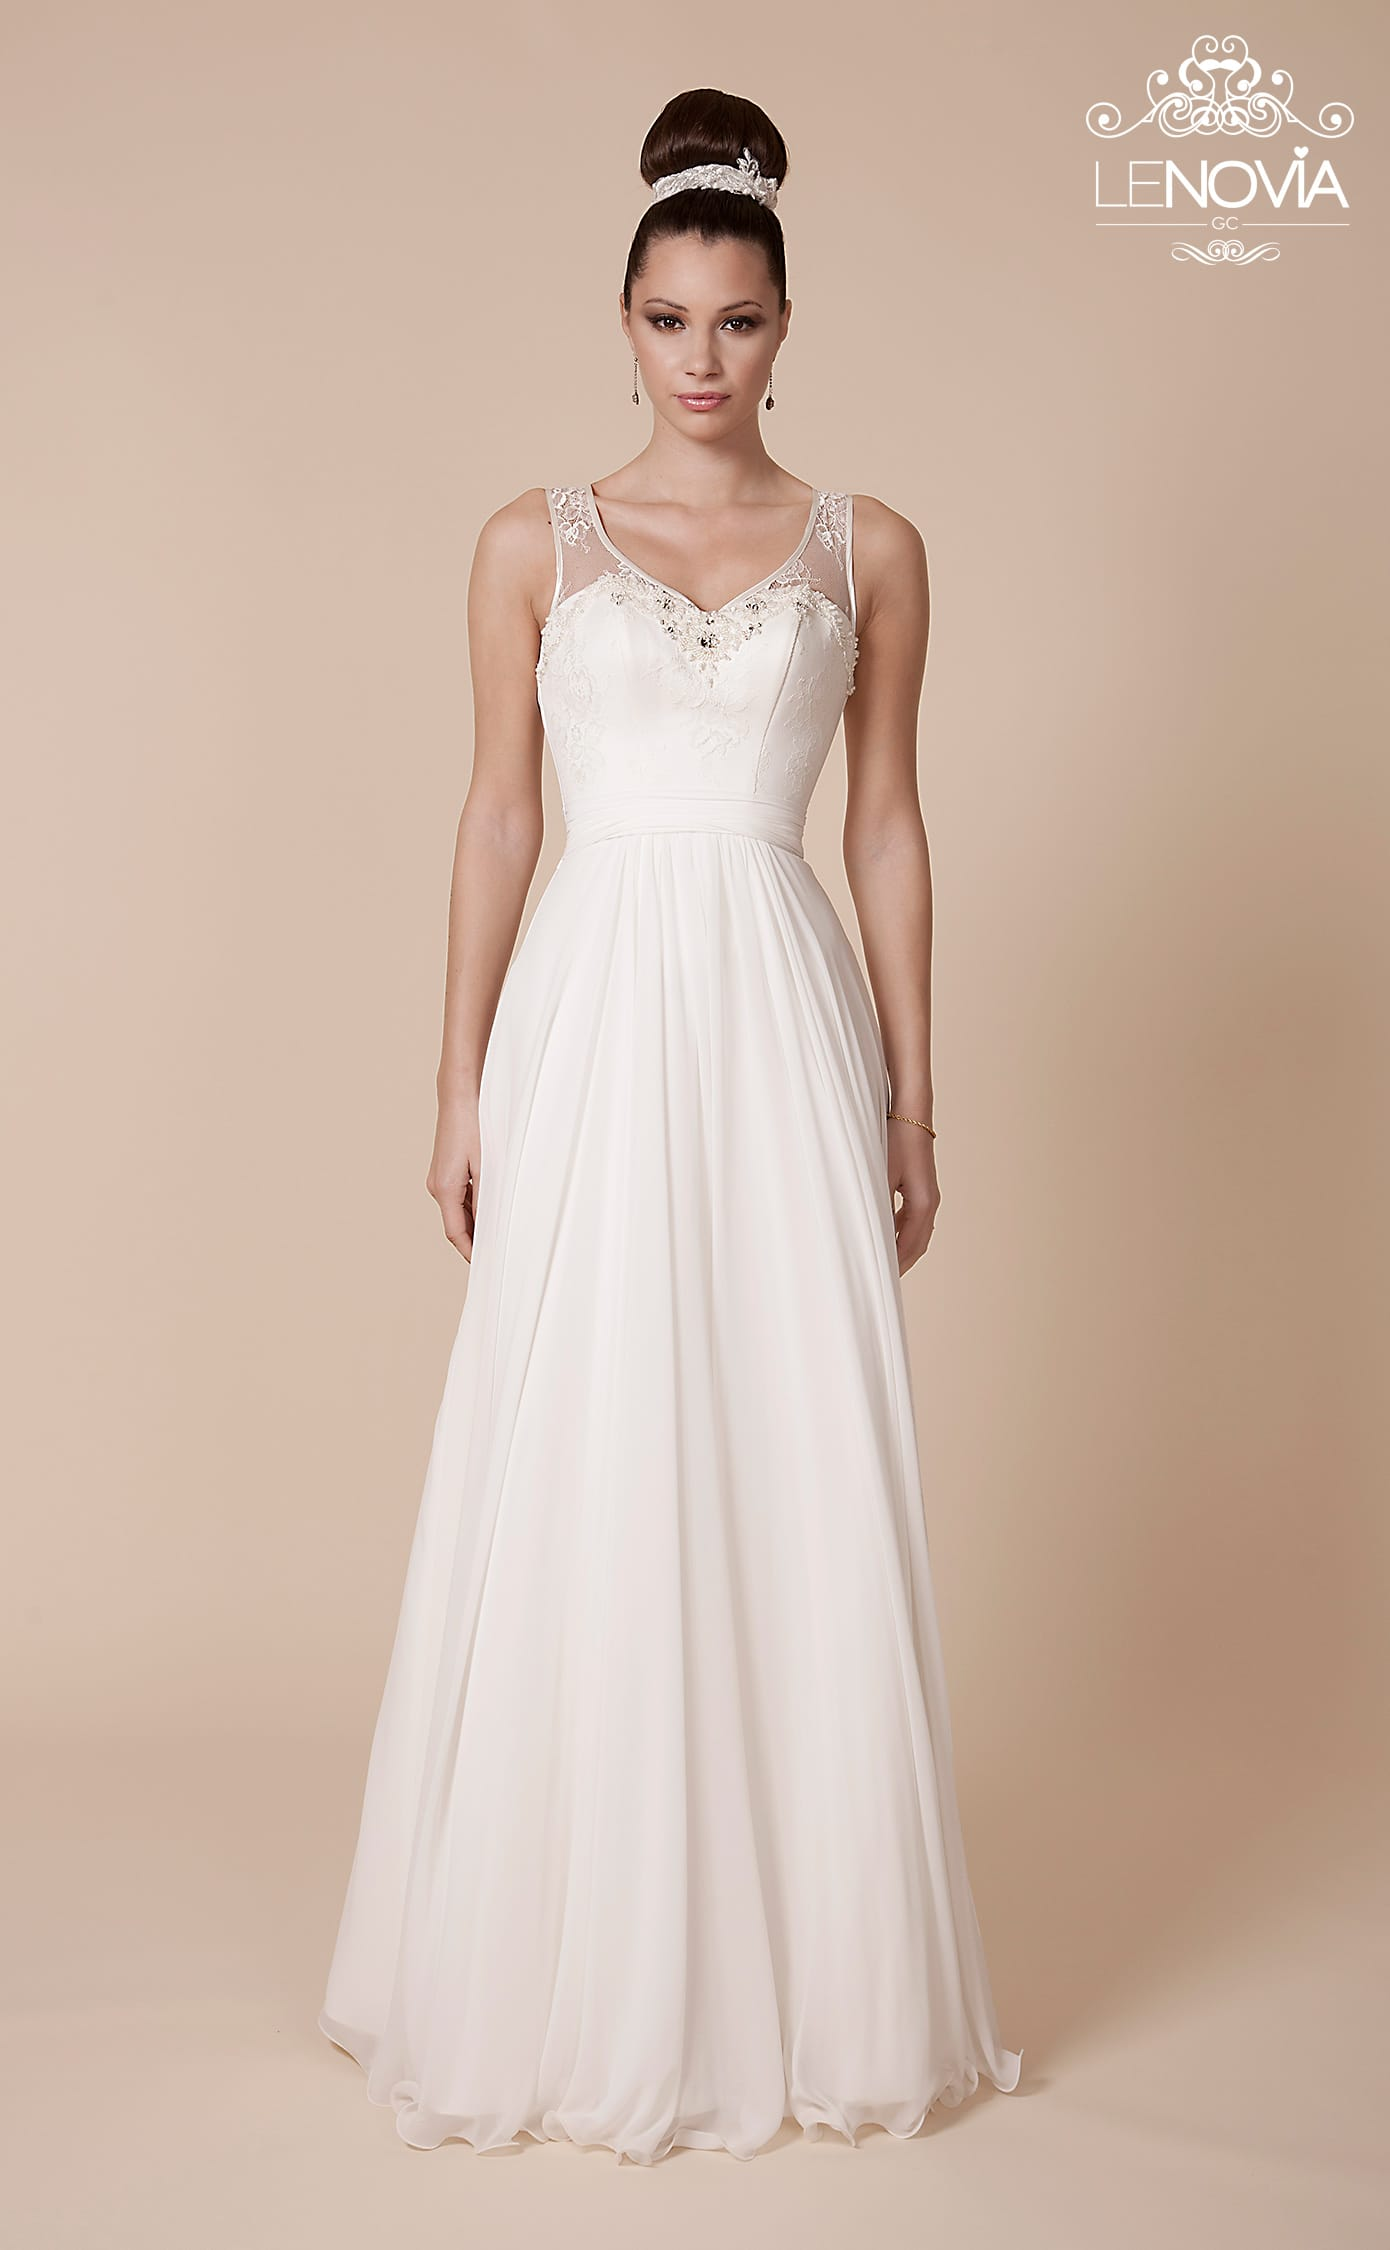 Sell wedding dress online ireland flower girl dresses for Where to sell wedding dresses